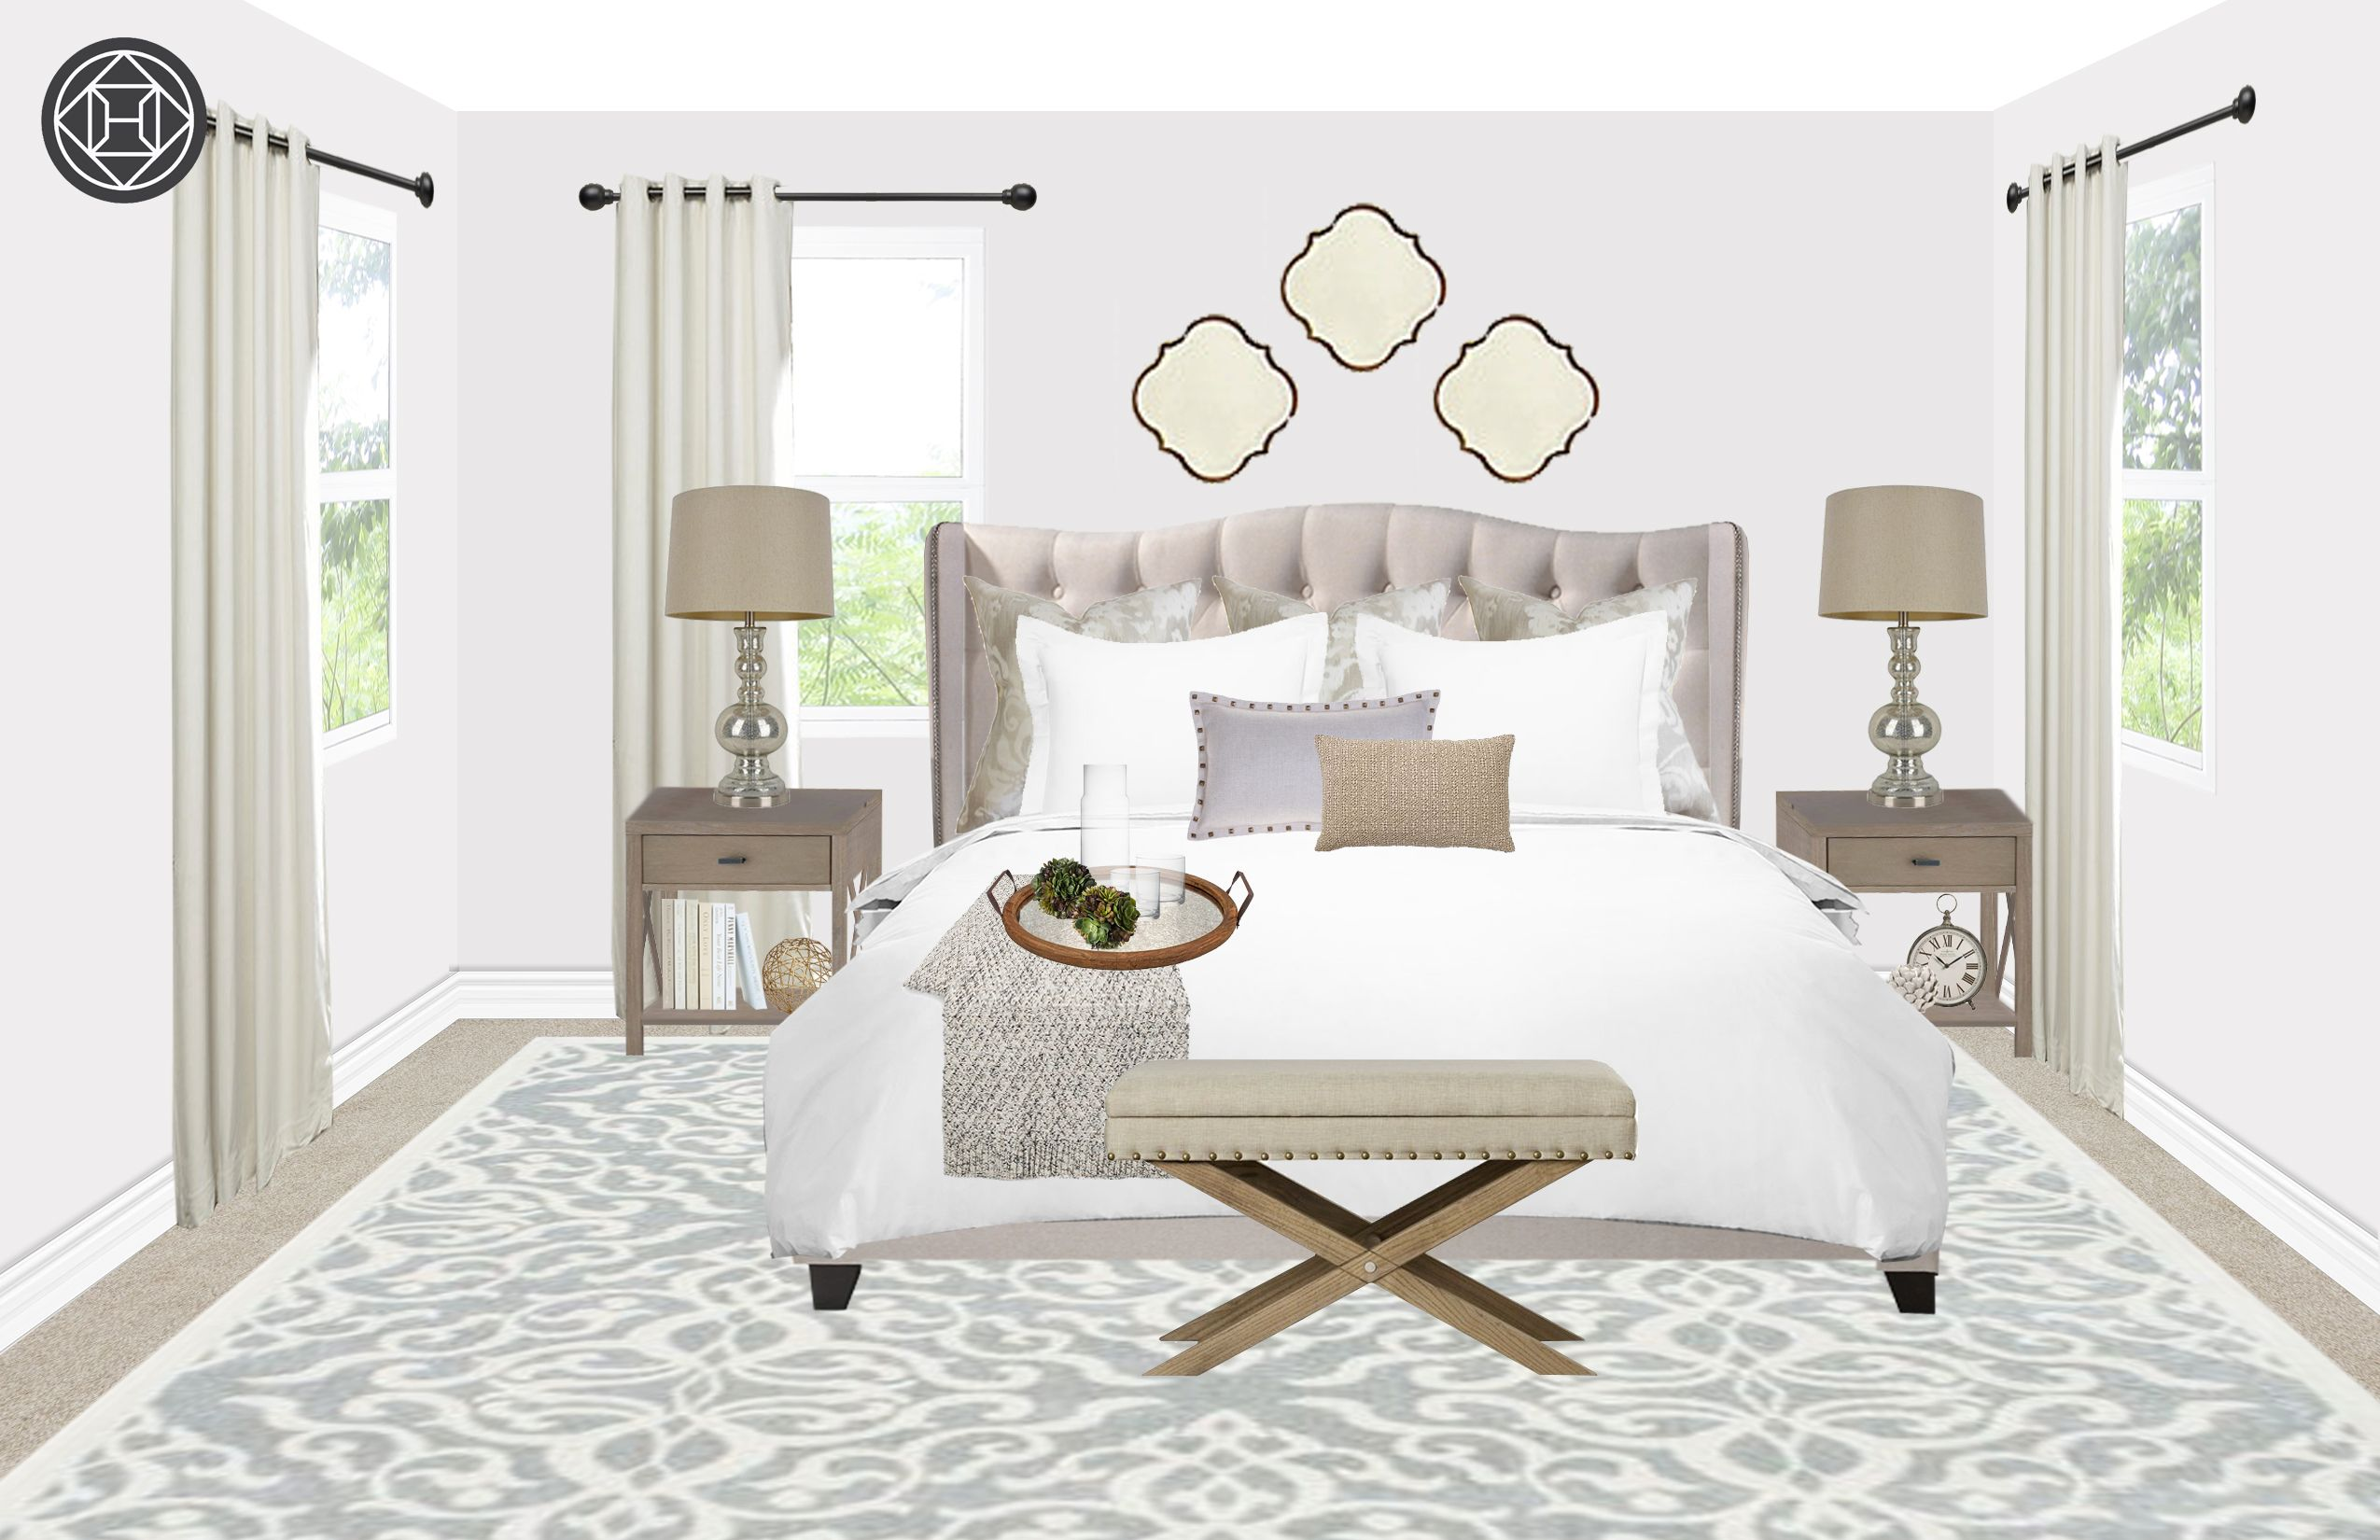 Contemporary Glam Farmhouse Rustic Bedroom Design By Havenly